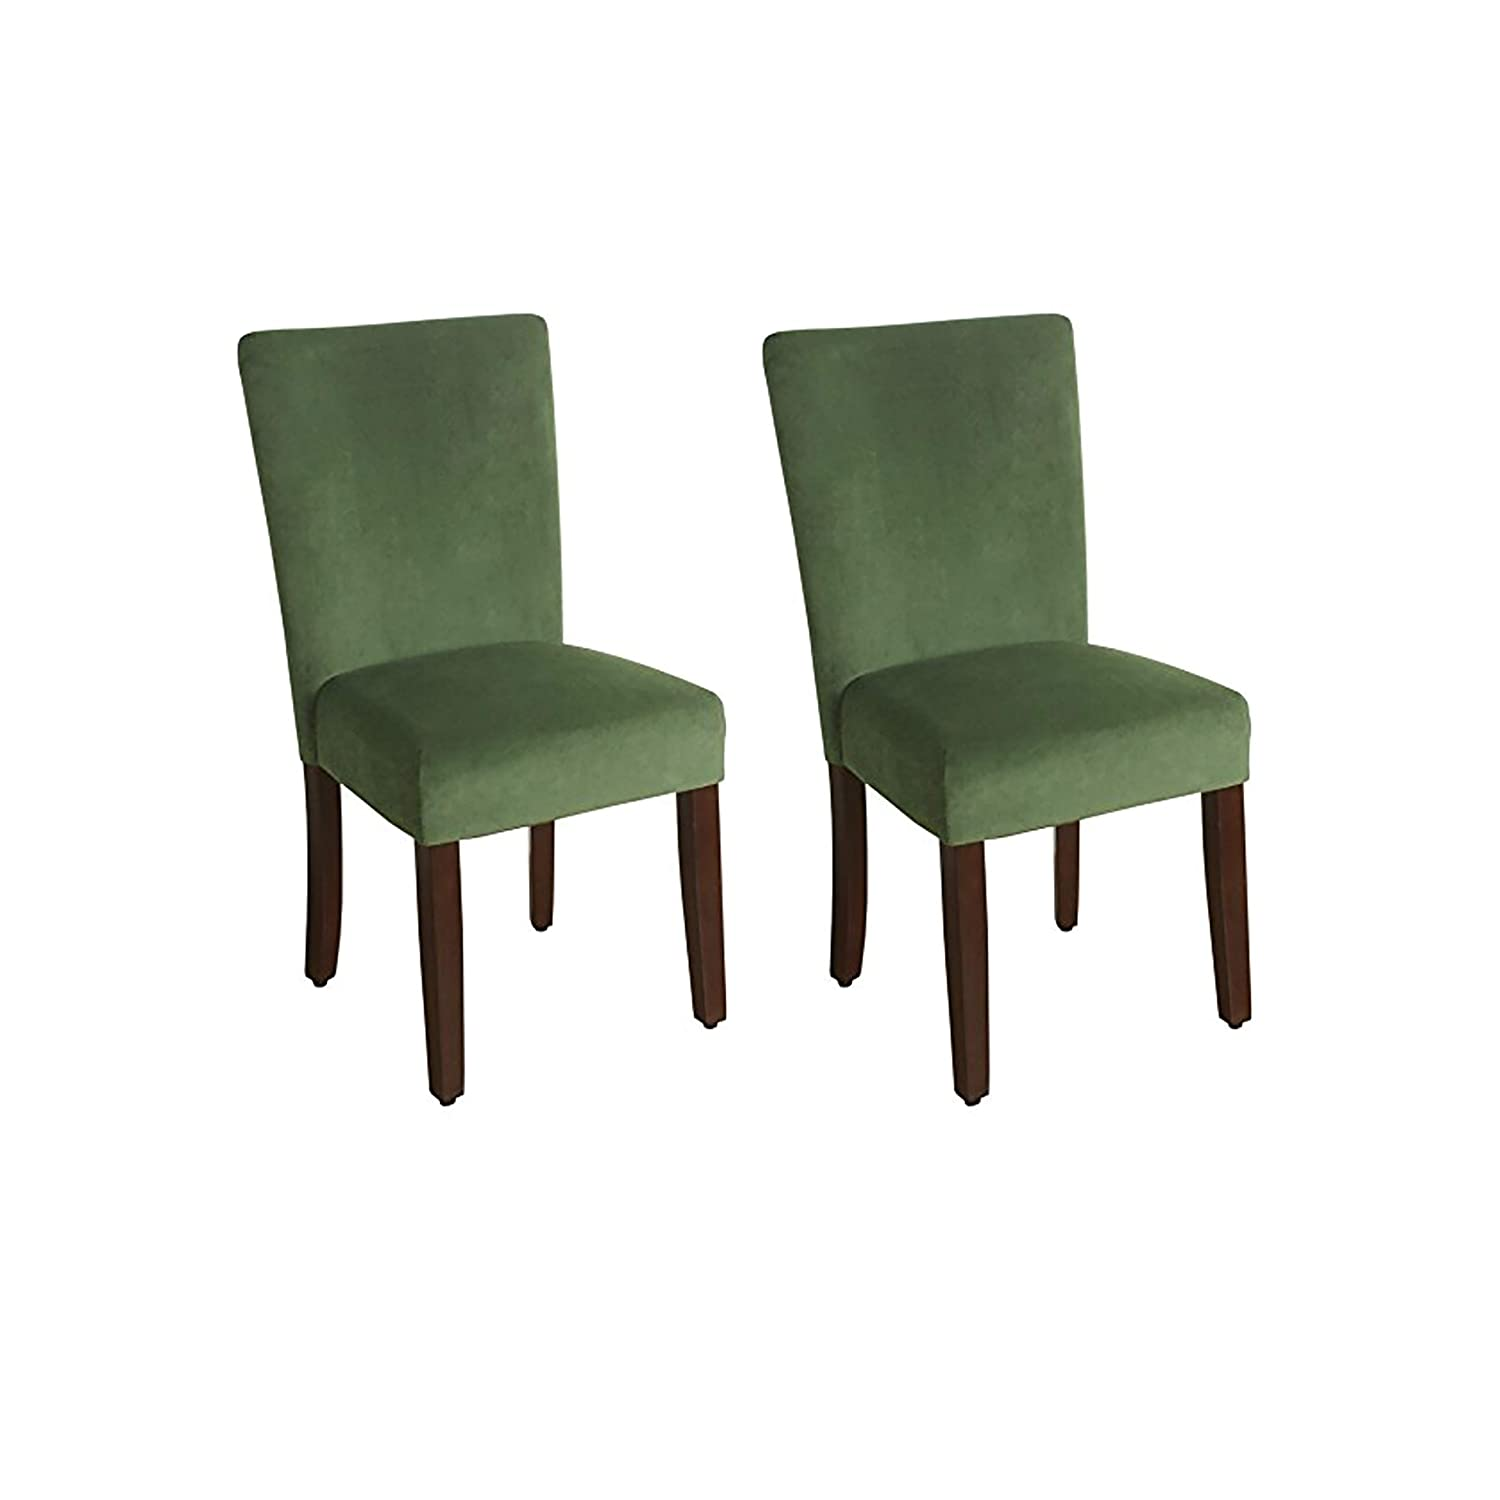 Dark Green Set of 2 HomePop Parsons Classic Upholstered Accent Dining Chair, Set of 2, Navy and Cream Geometric